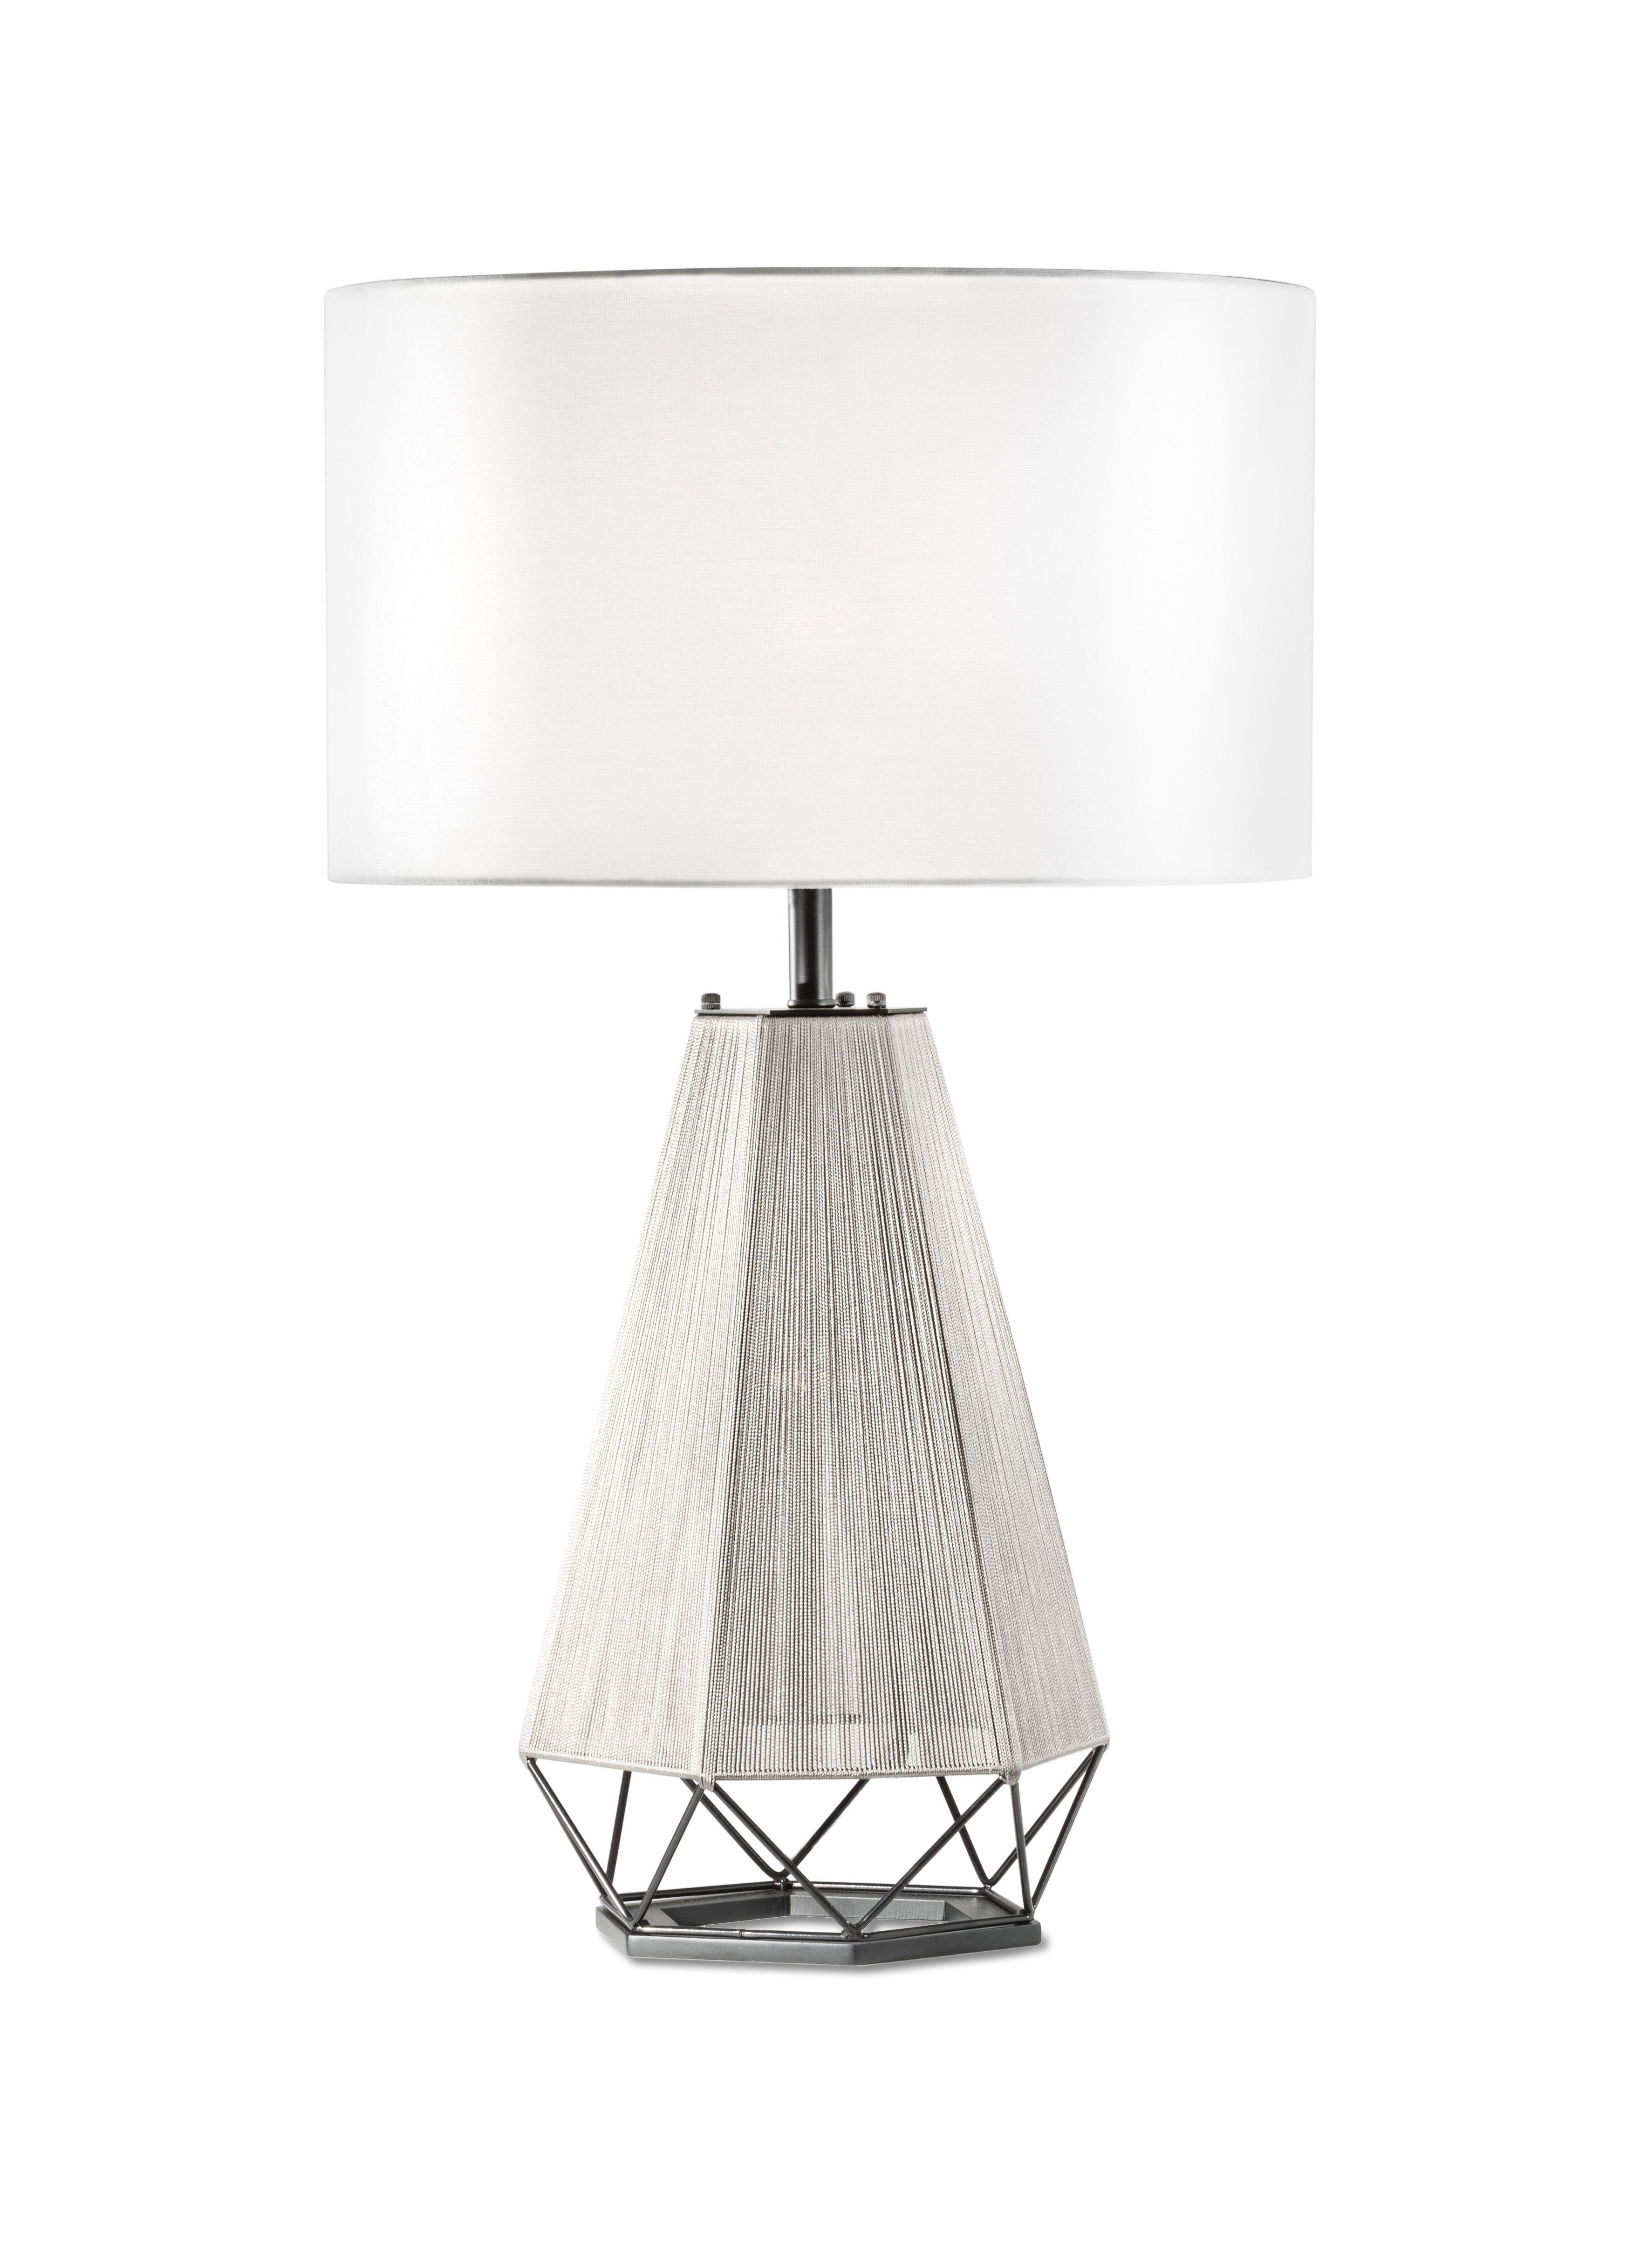 hight resolution of the polygon table lamp from novaofcalifornia is handcrafted and provides soft internal night light for